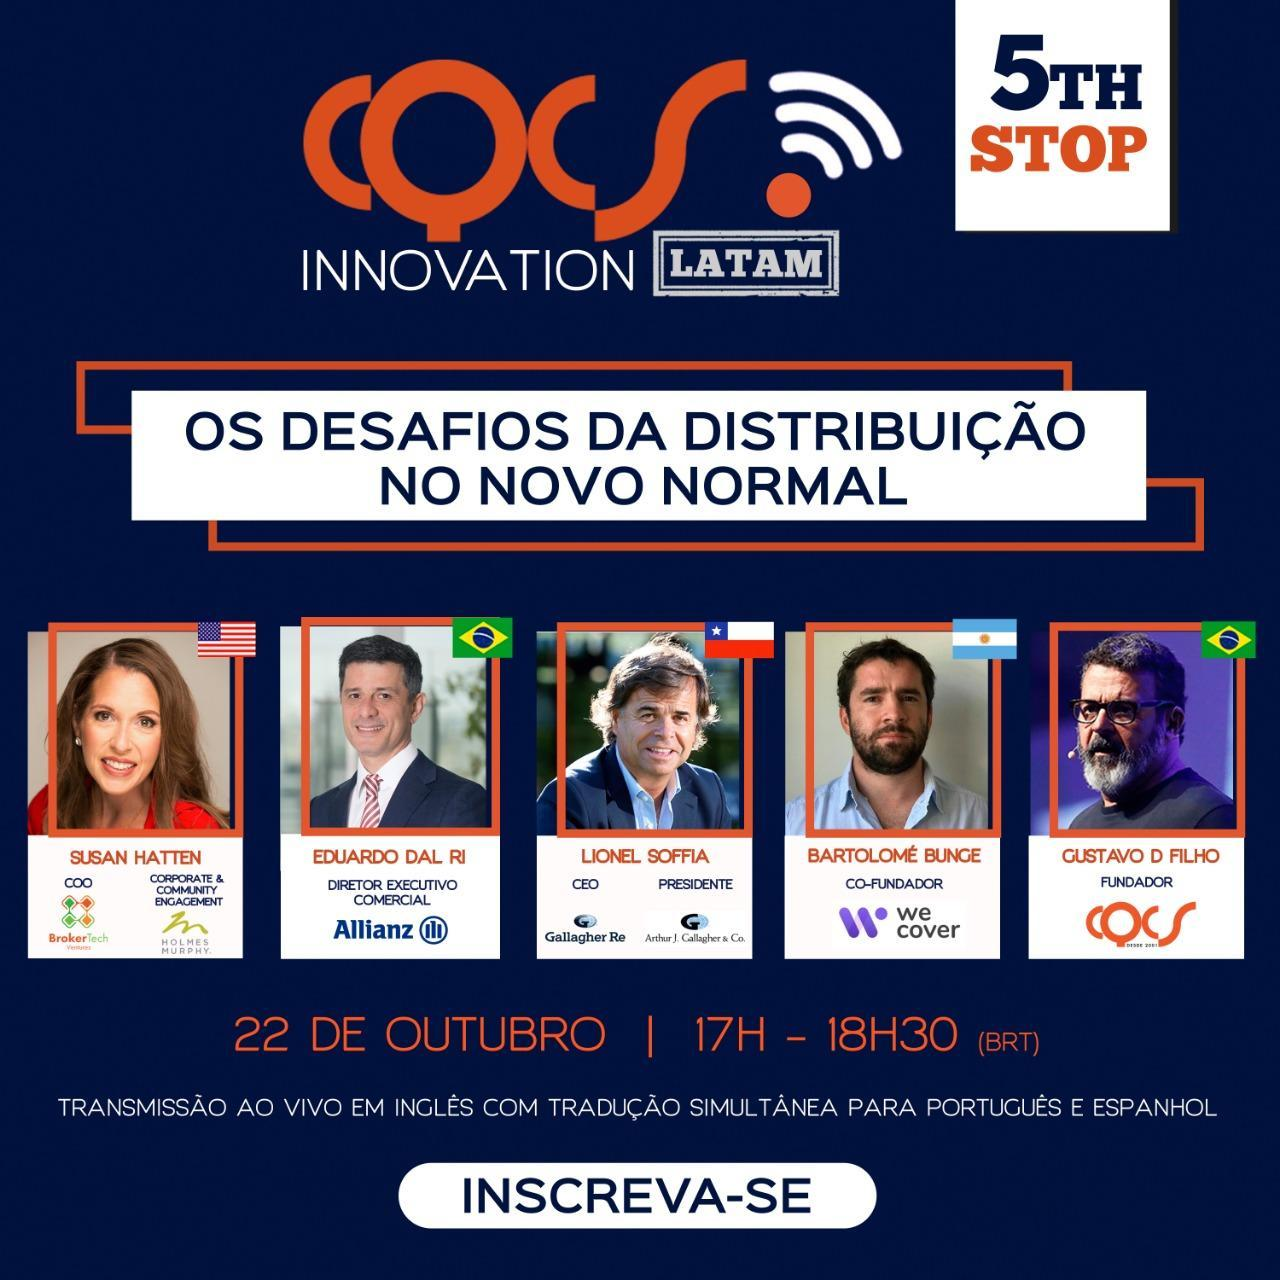 5th Stop CQCS Innovation Latam - Parceria Sincor - MT